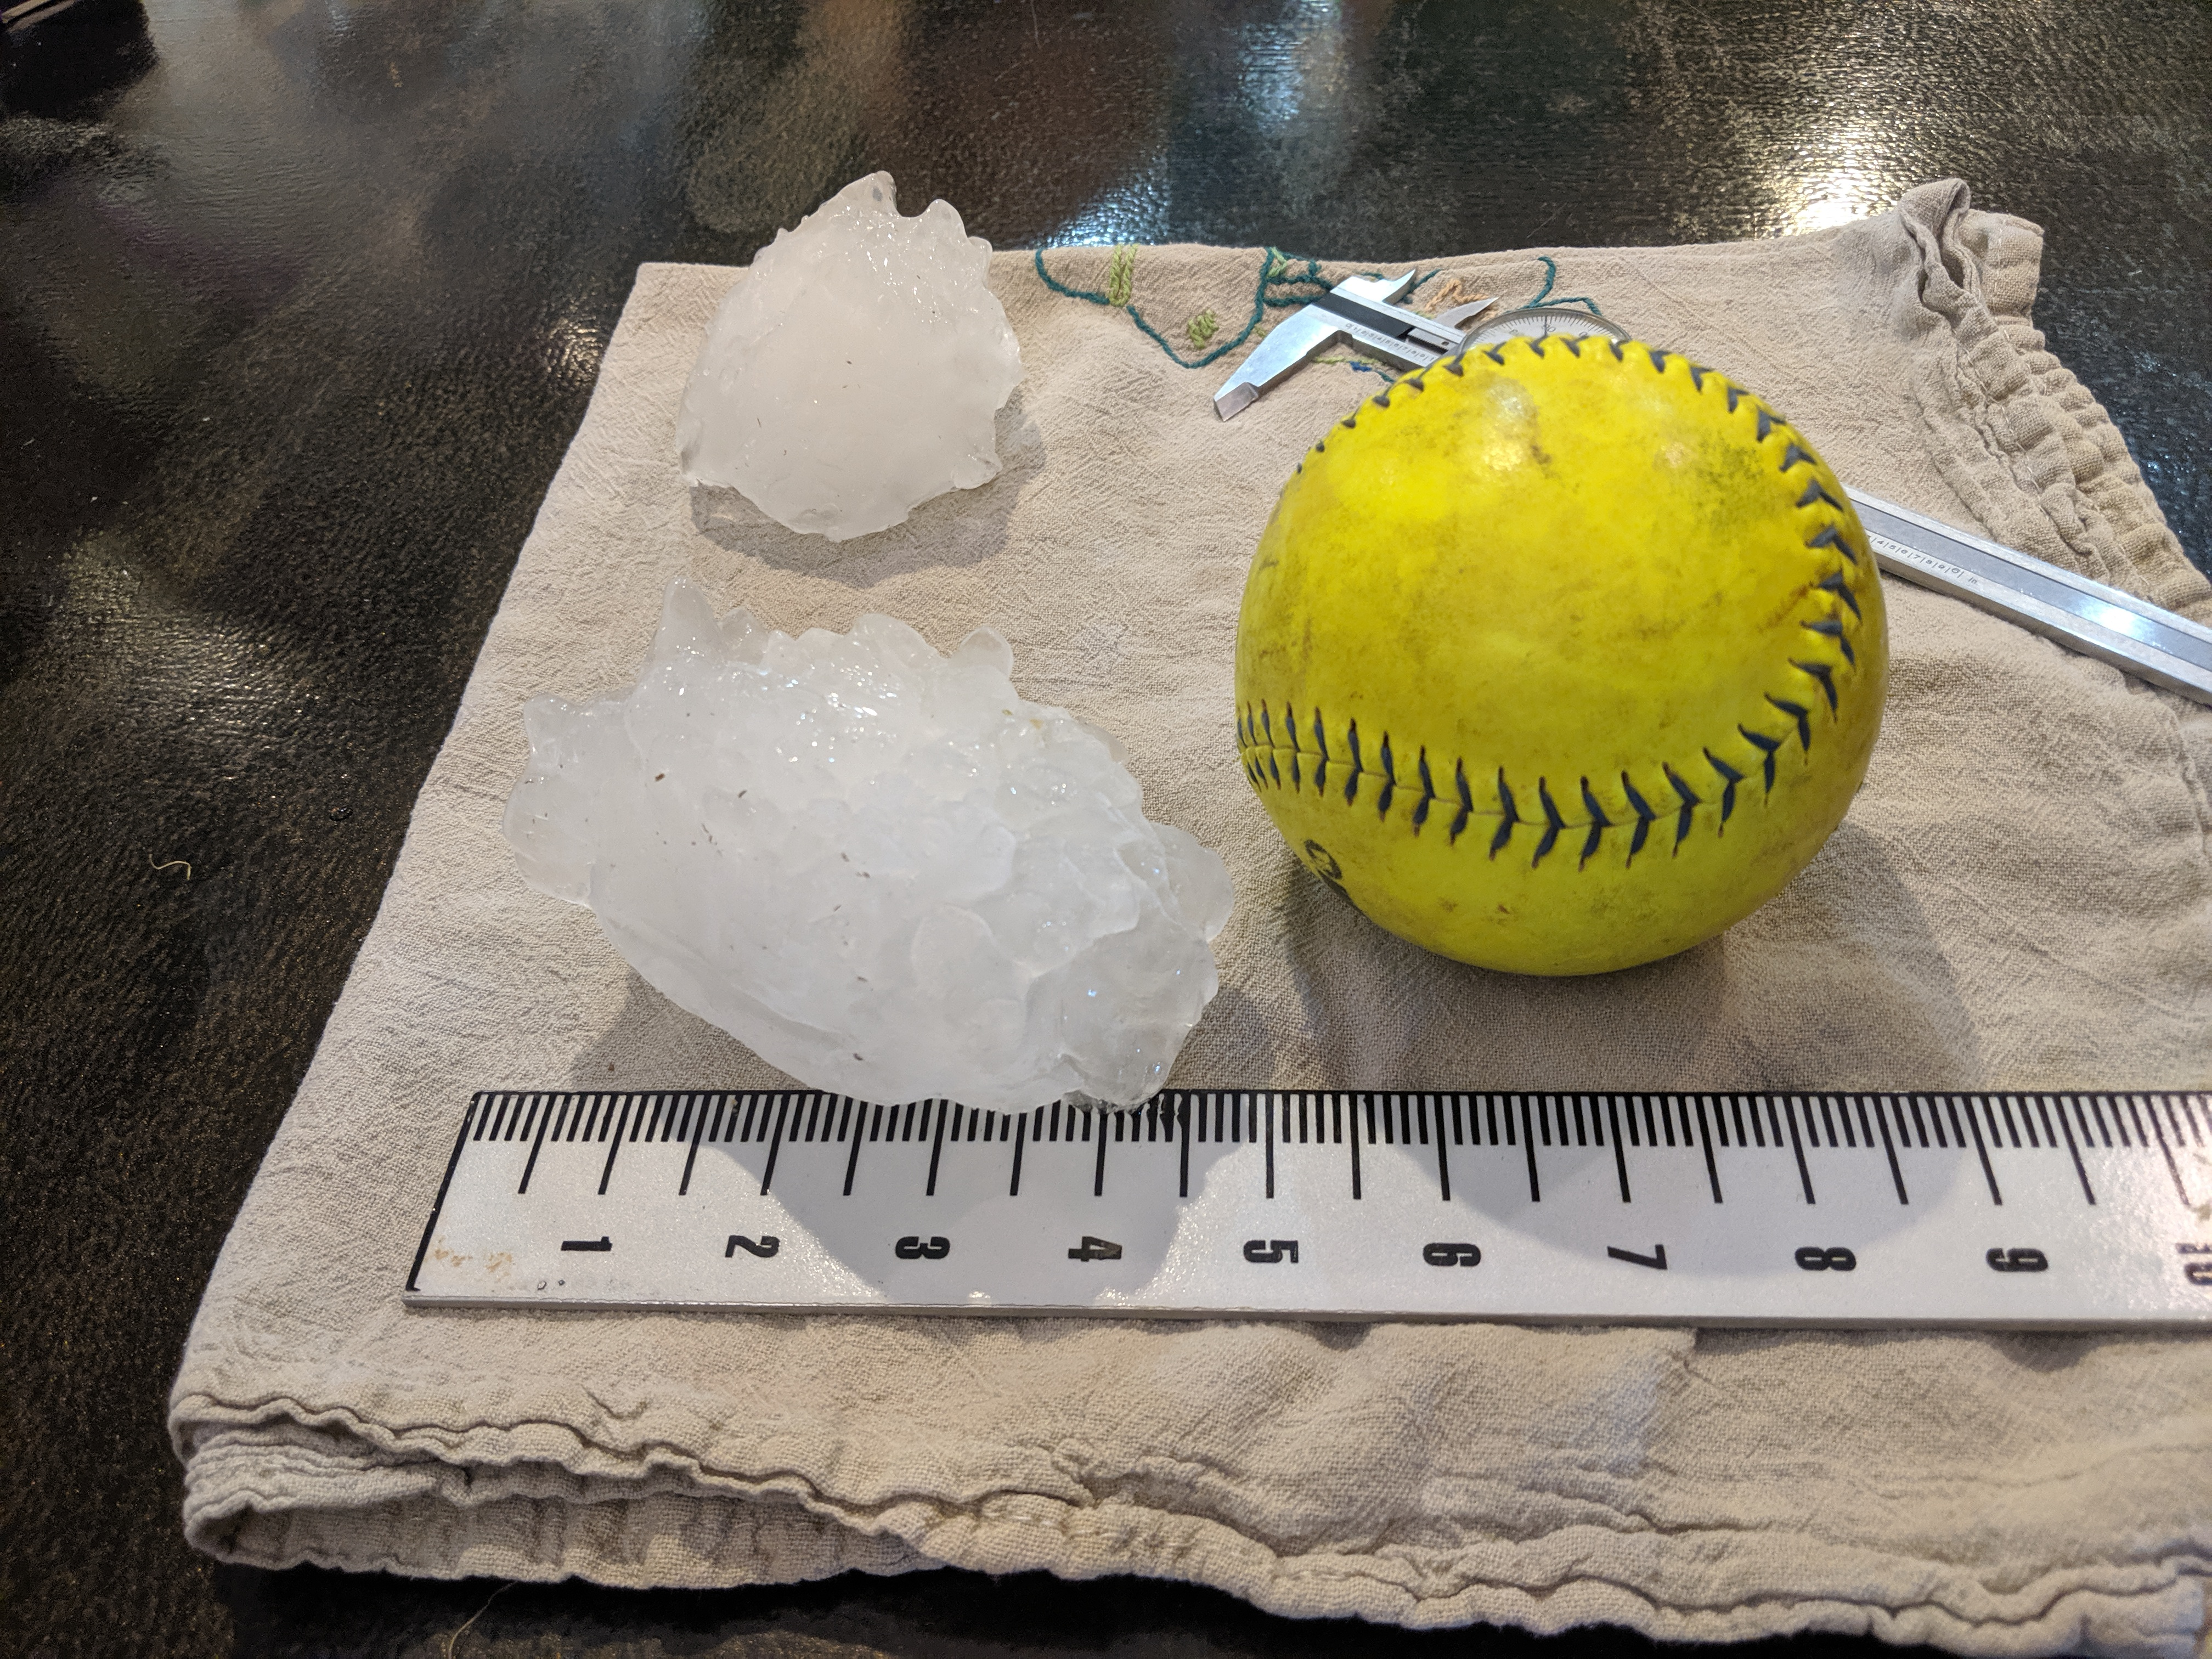 This hailstone fell outside of Bethune, Colorado, on Aug. 13, 2019.